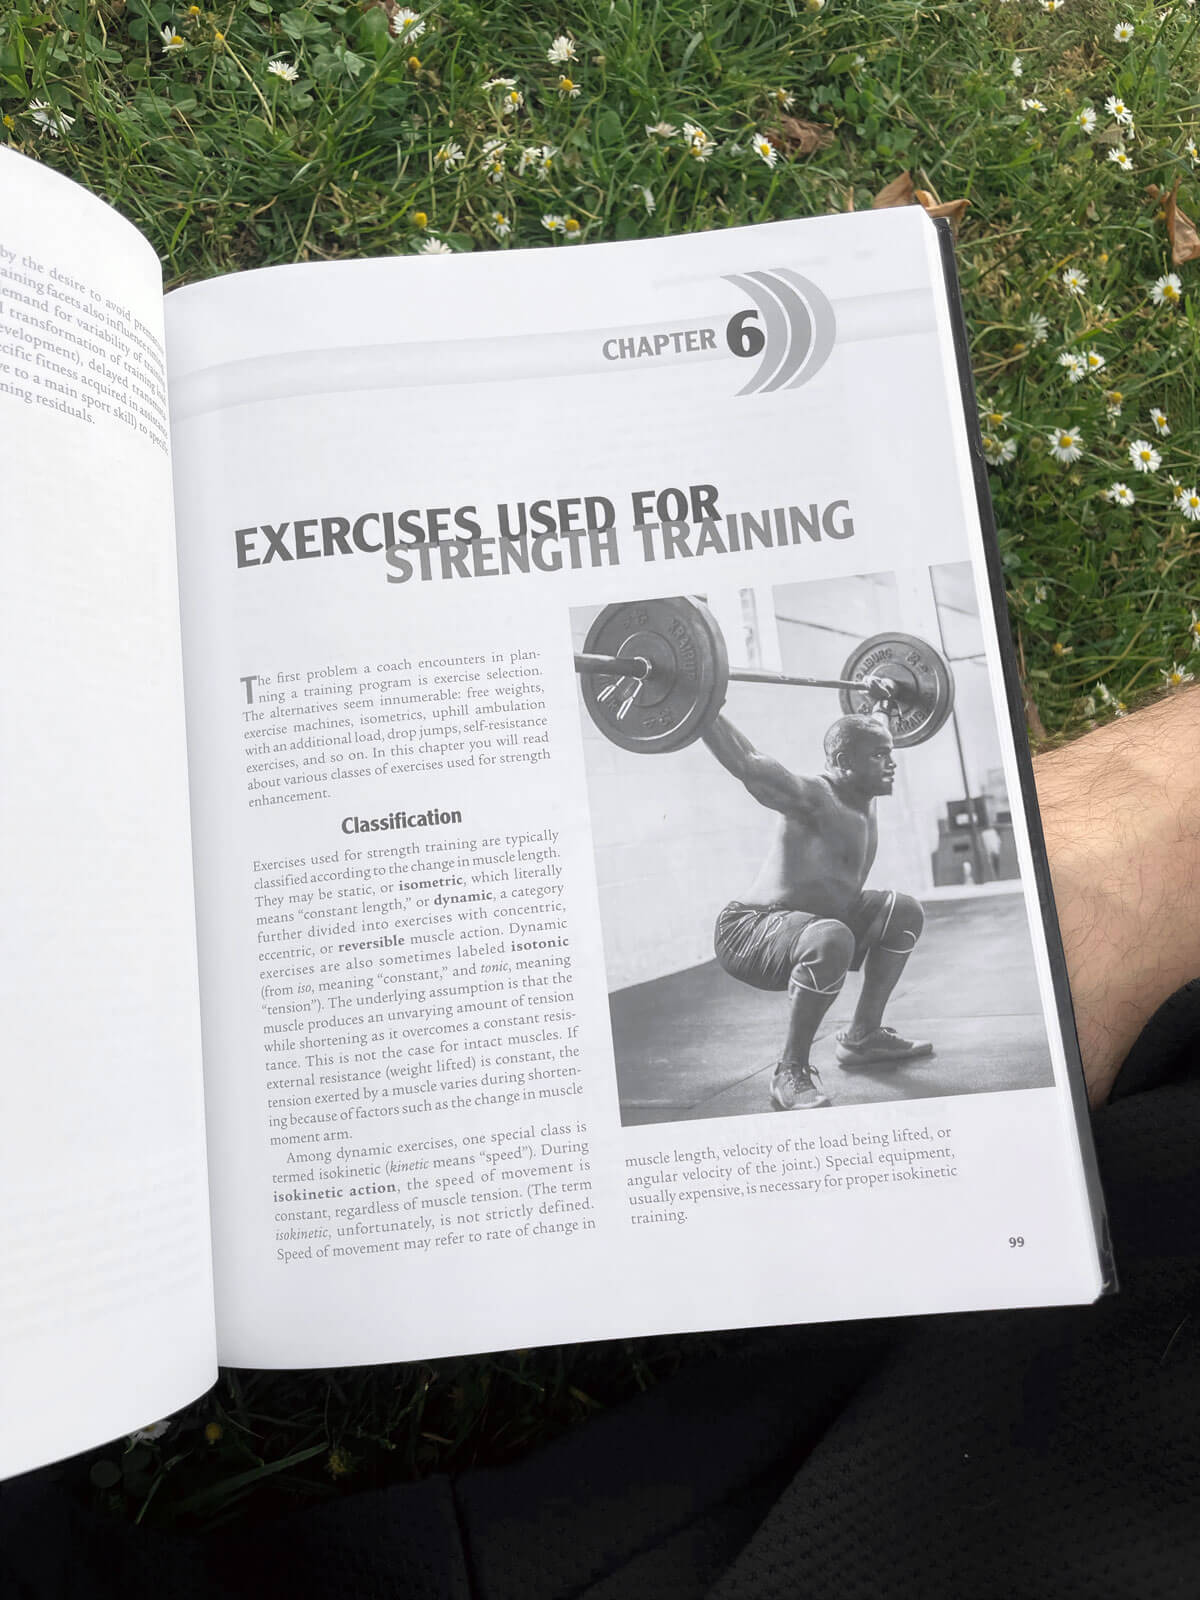 Science and Practice of Strength Training by Vladimir Zatsiorsky - Chapter 6